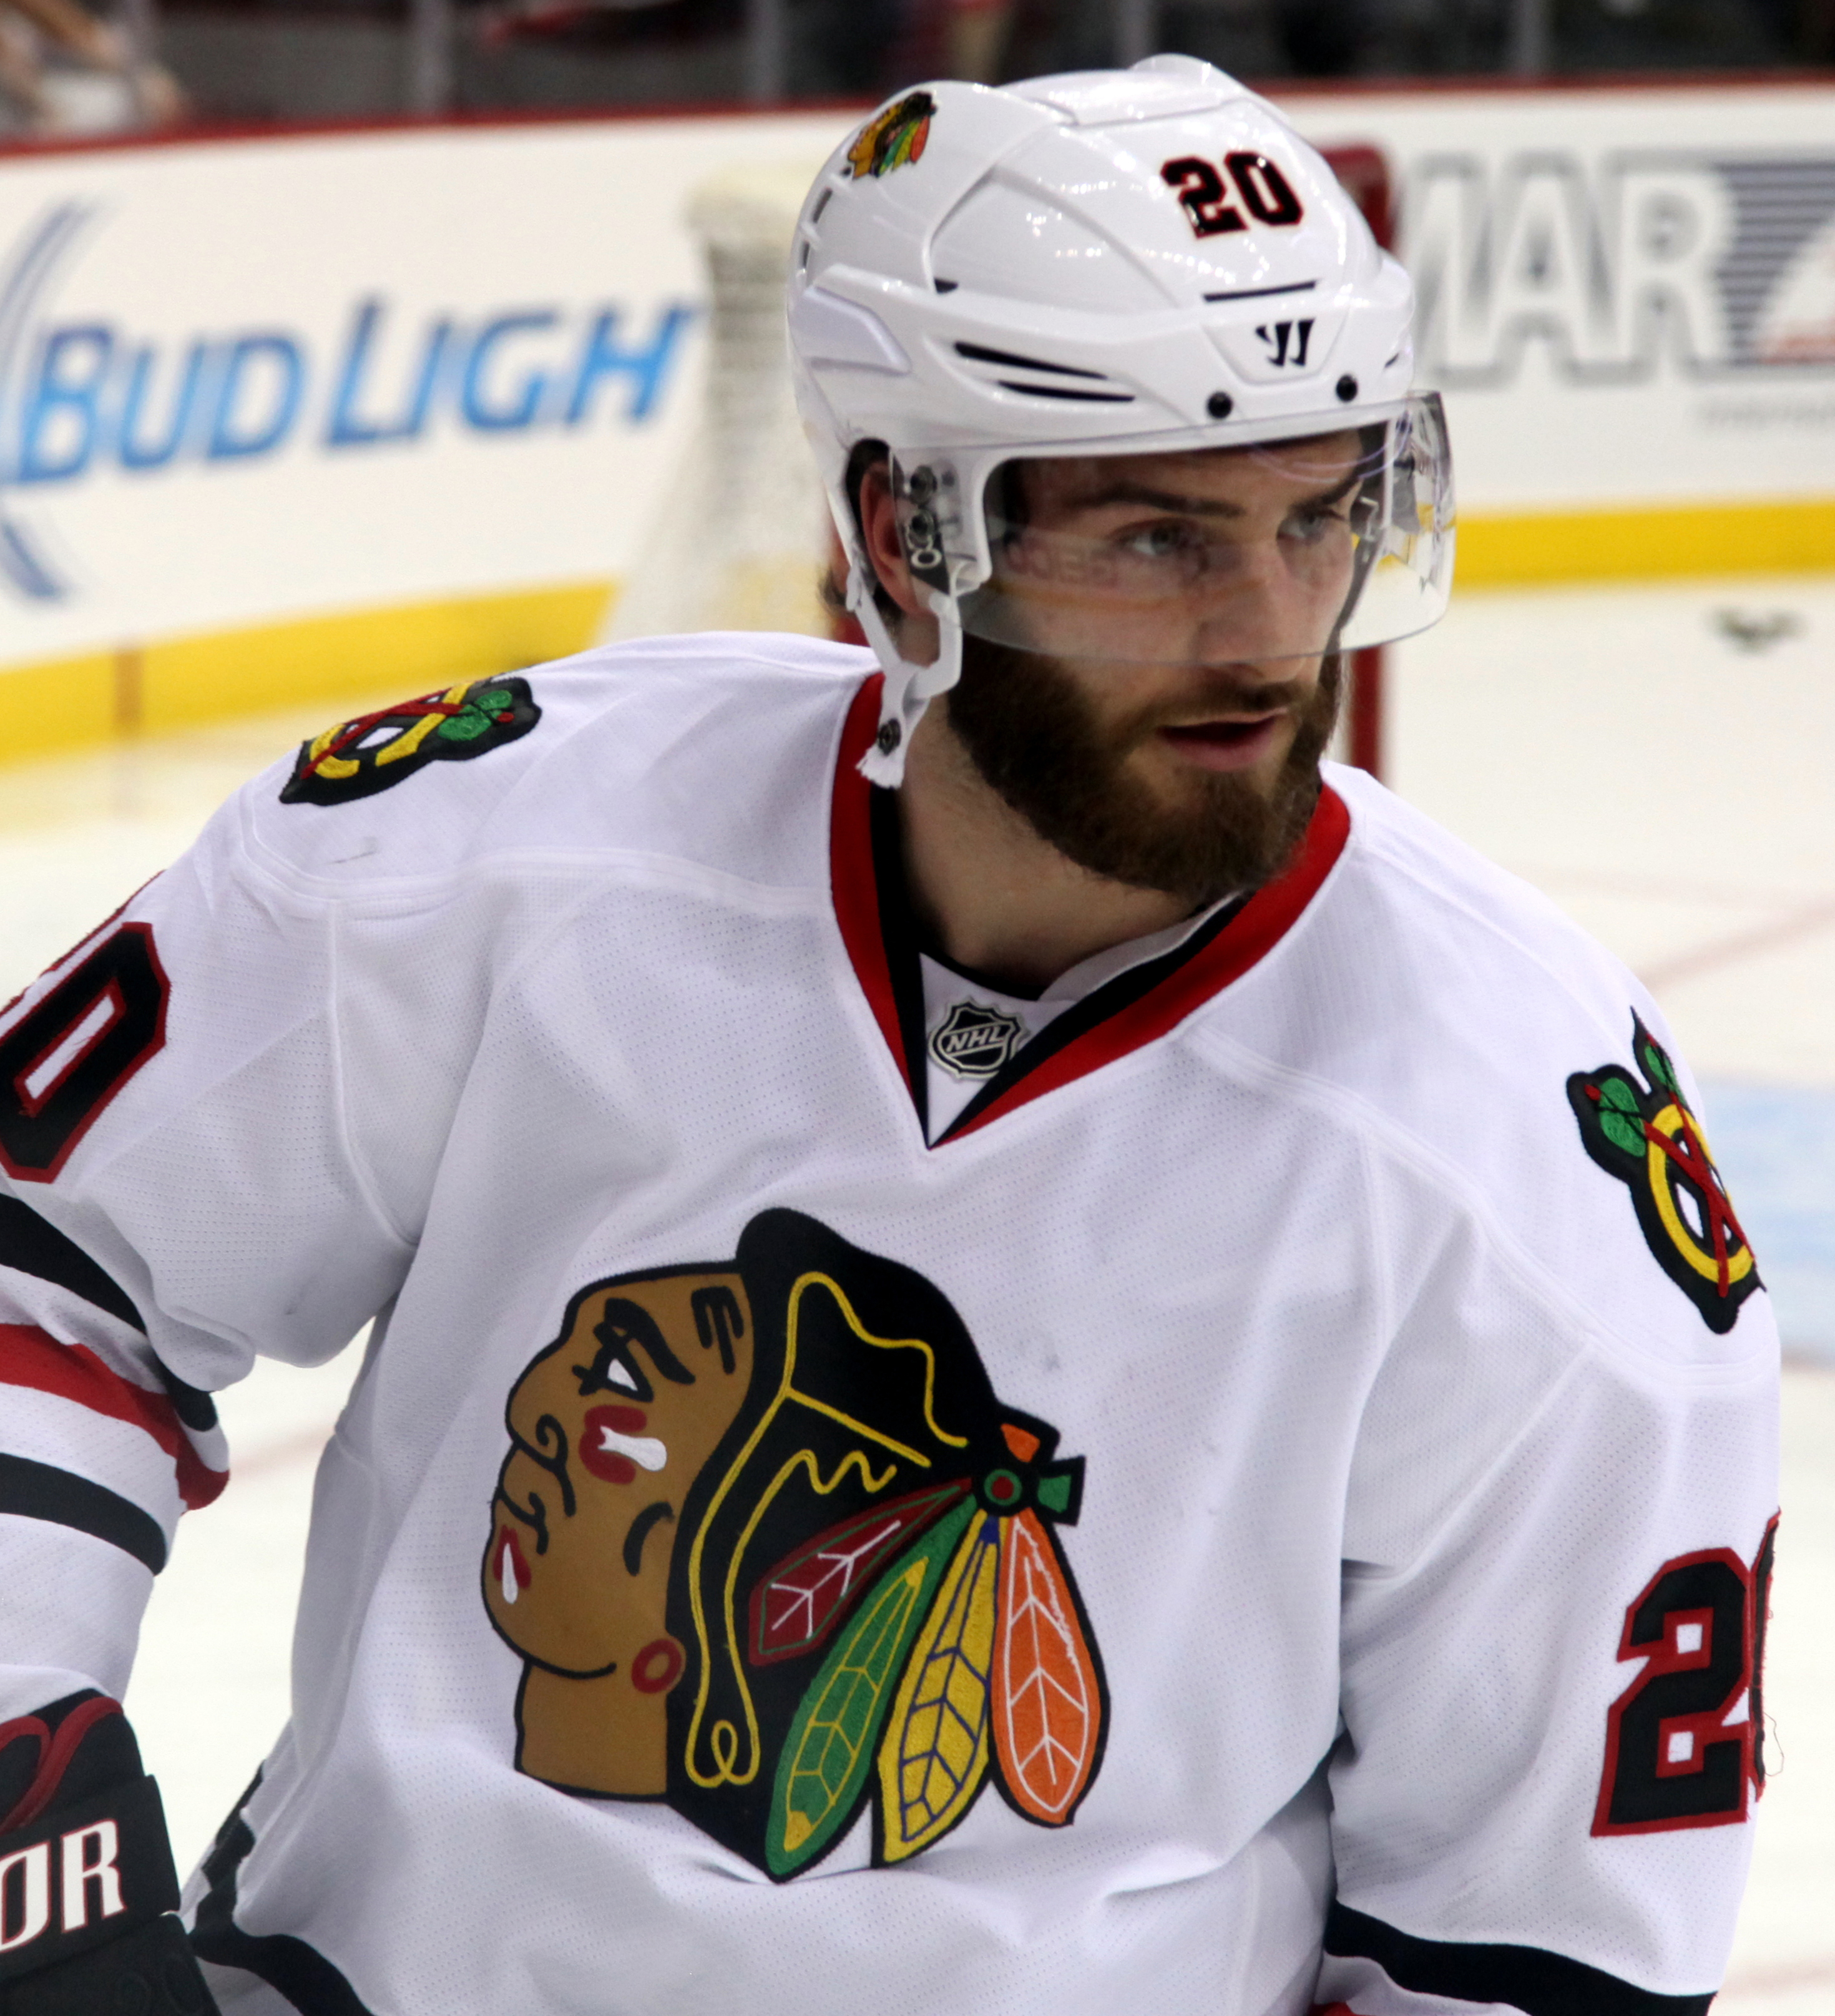 Brandon Saad Brandon Saad Wikipedia the free encyclopedia